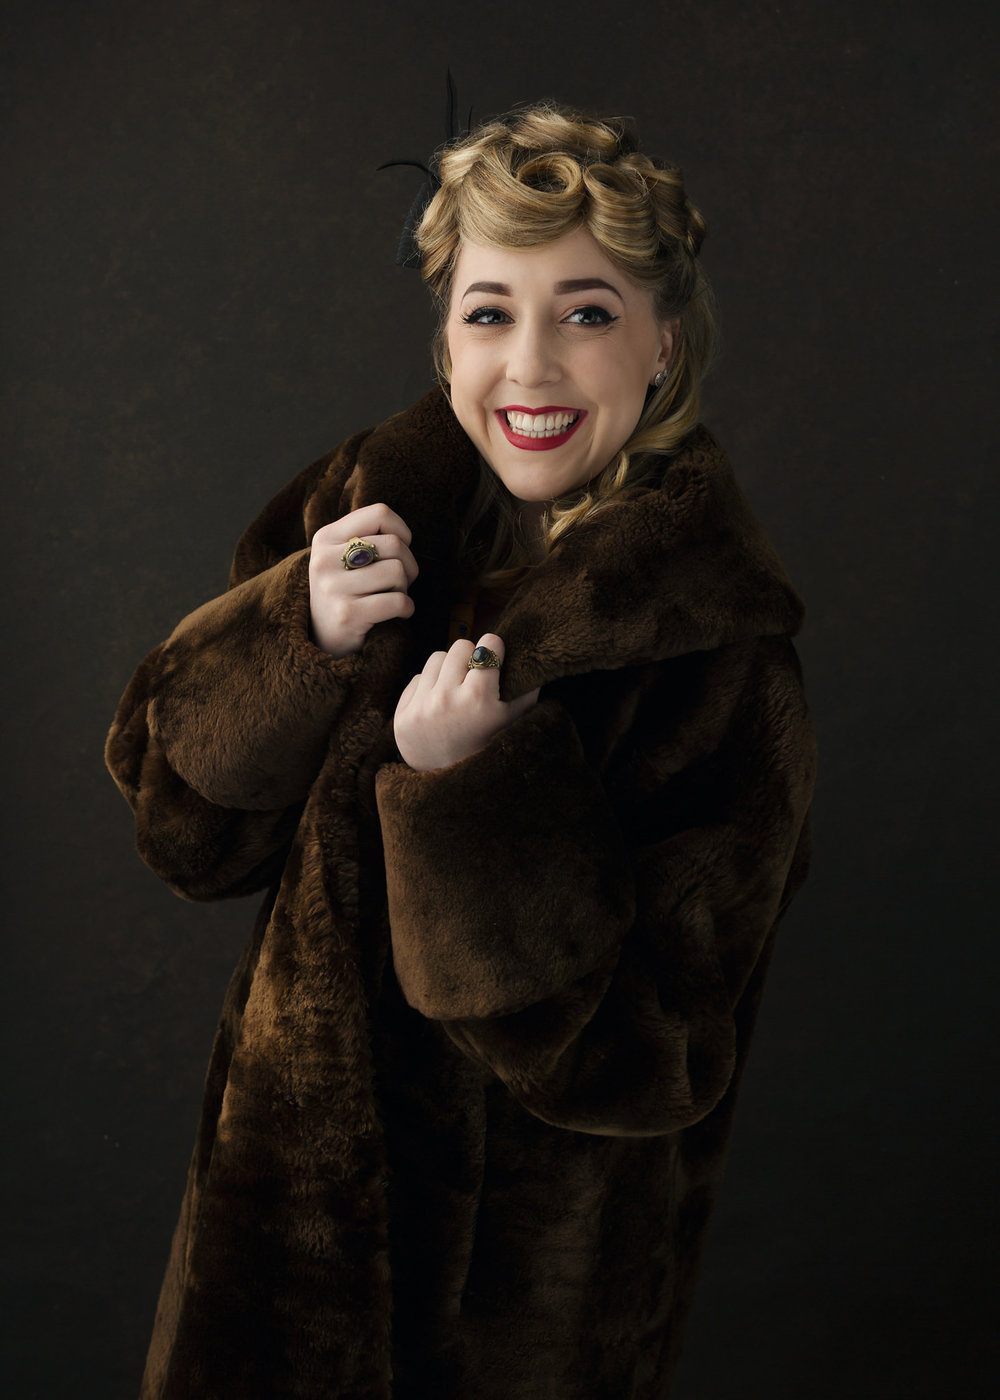 Vintage fur coat model photography